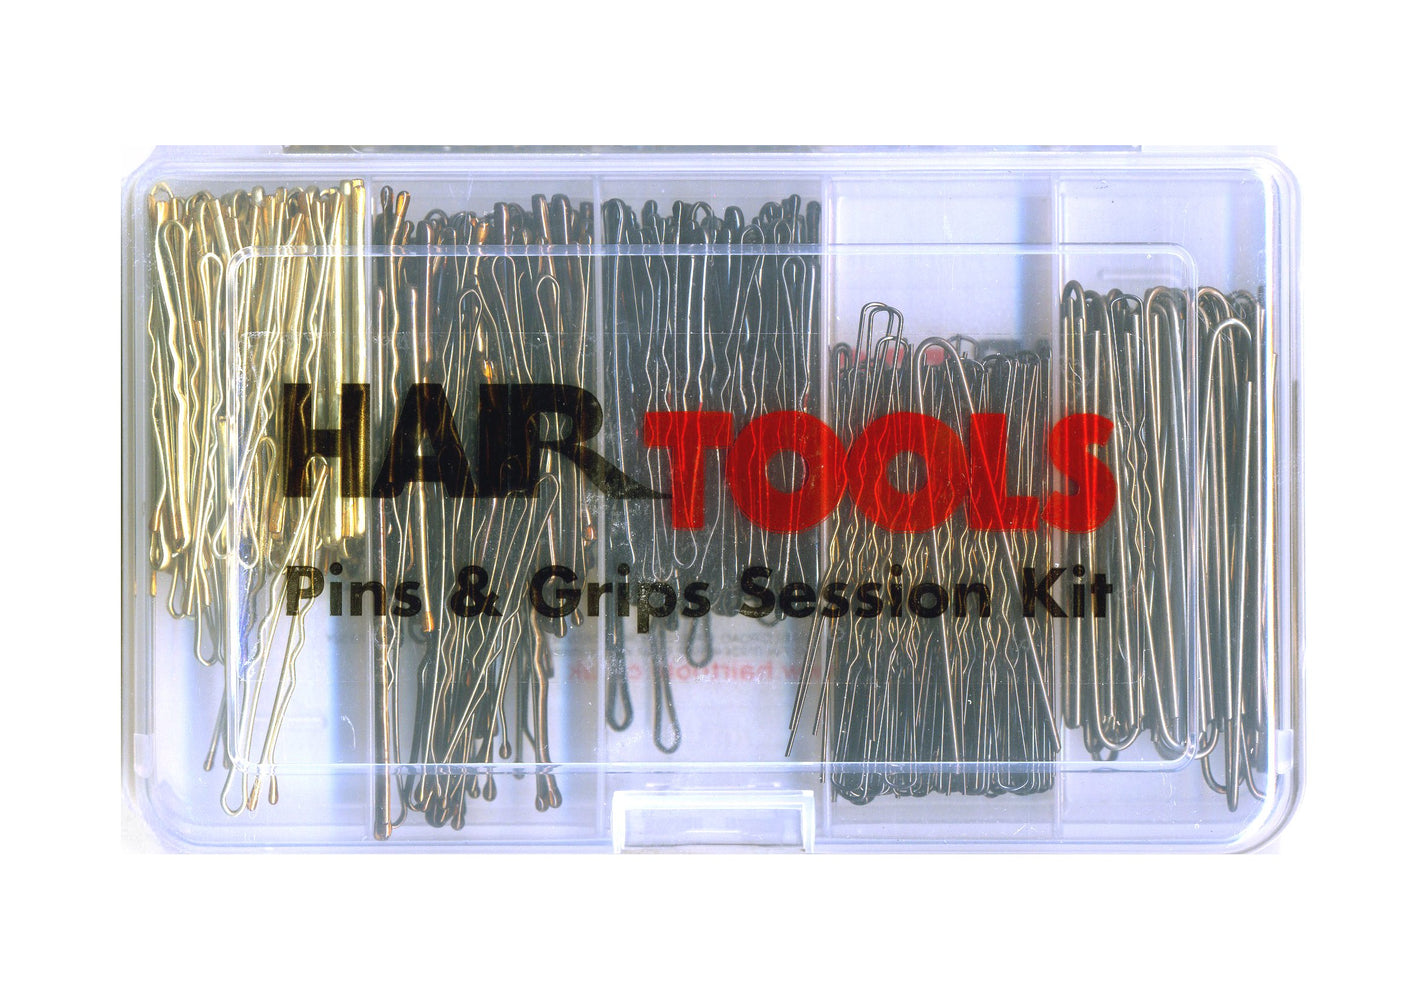 Hair Tools - Pins Grips Session Kit